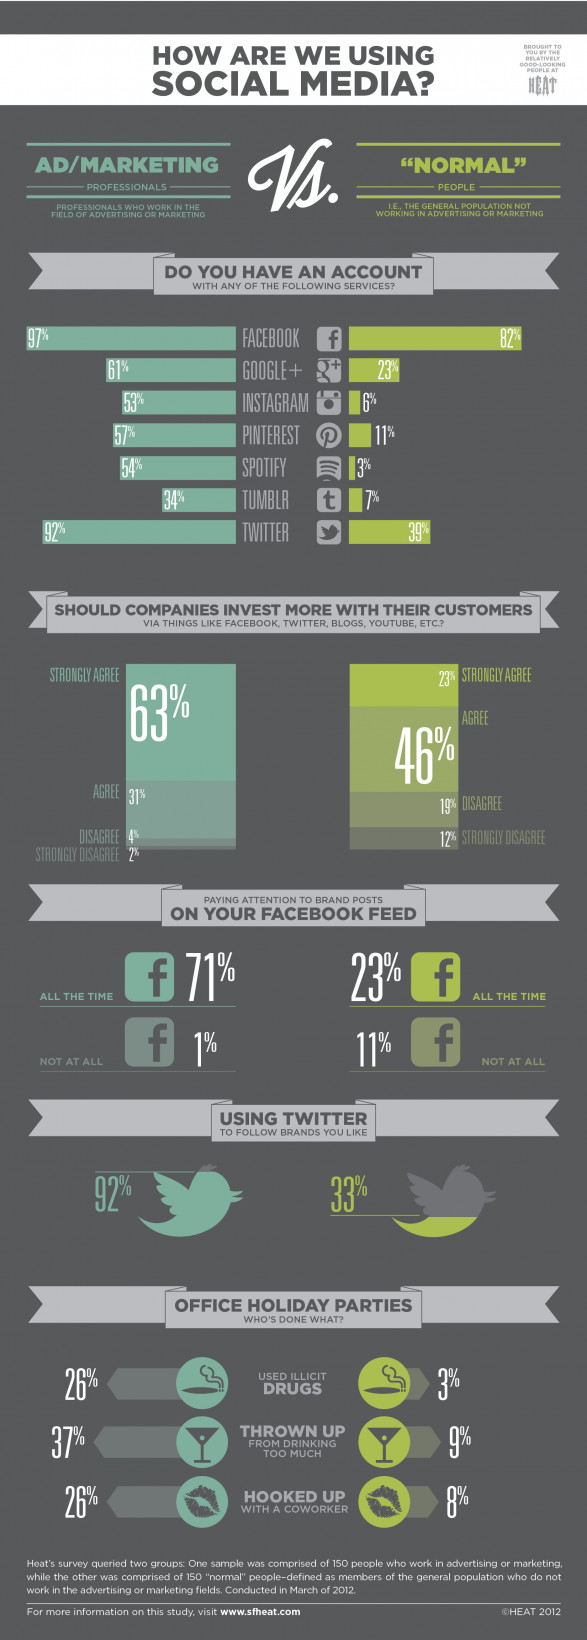 Brands Obsession on Social Media: Marketers Vs 'Normal' People